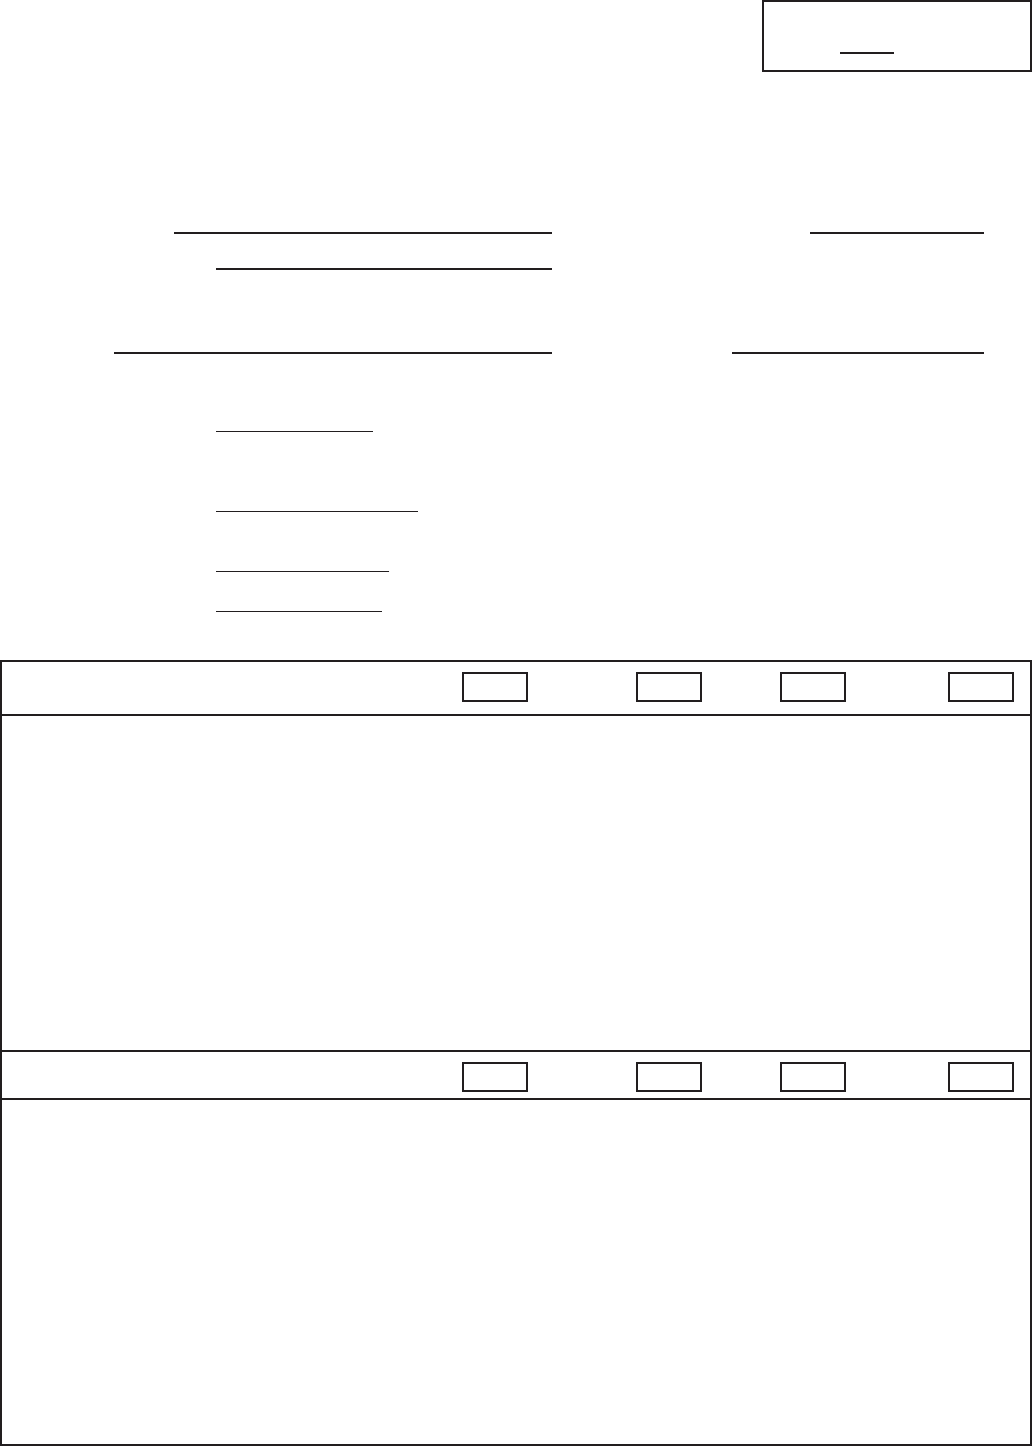 Teacher Evaluation Form 1